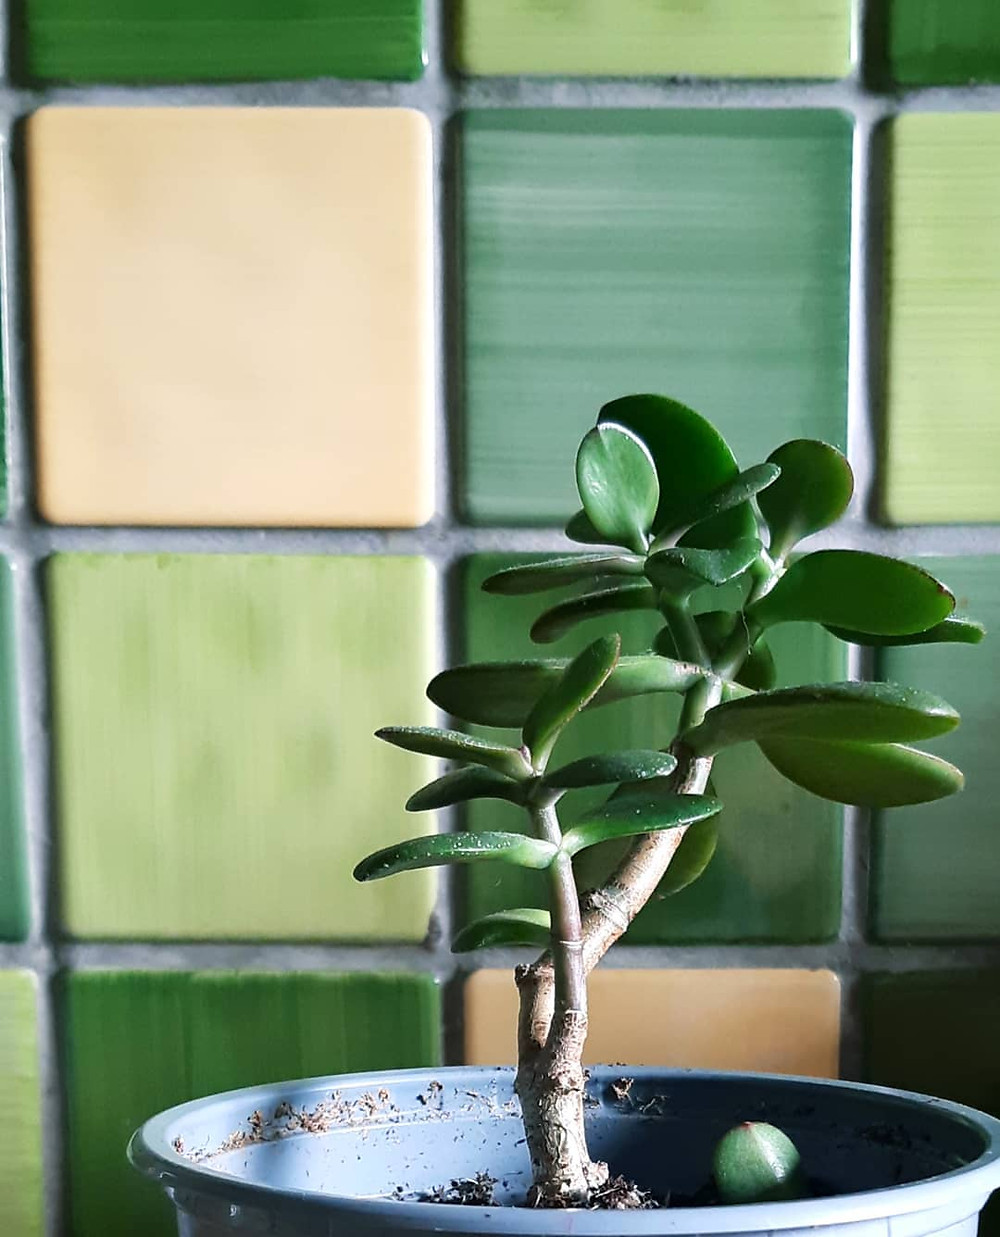 Jade Plant Houseplants You Can Propagate From Cuttings